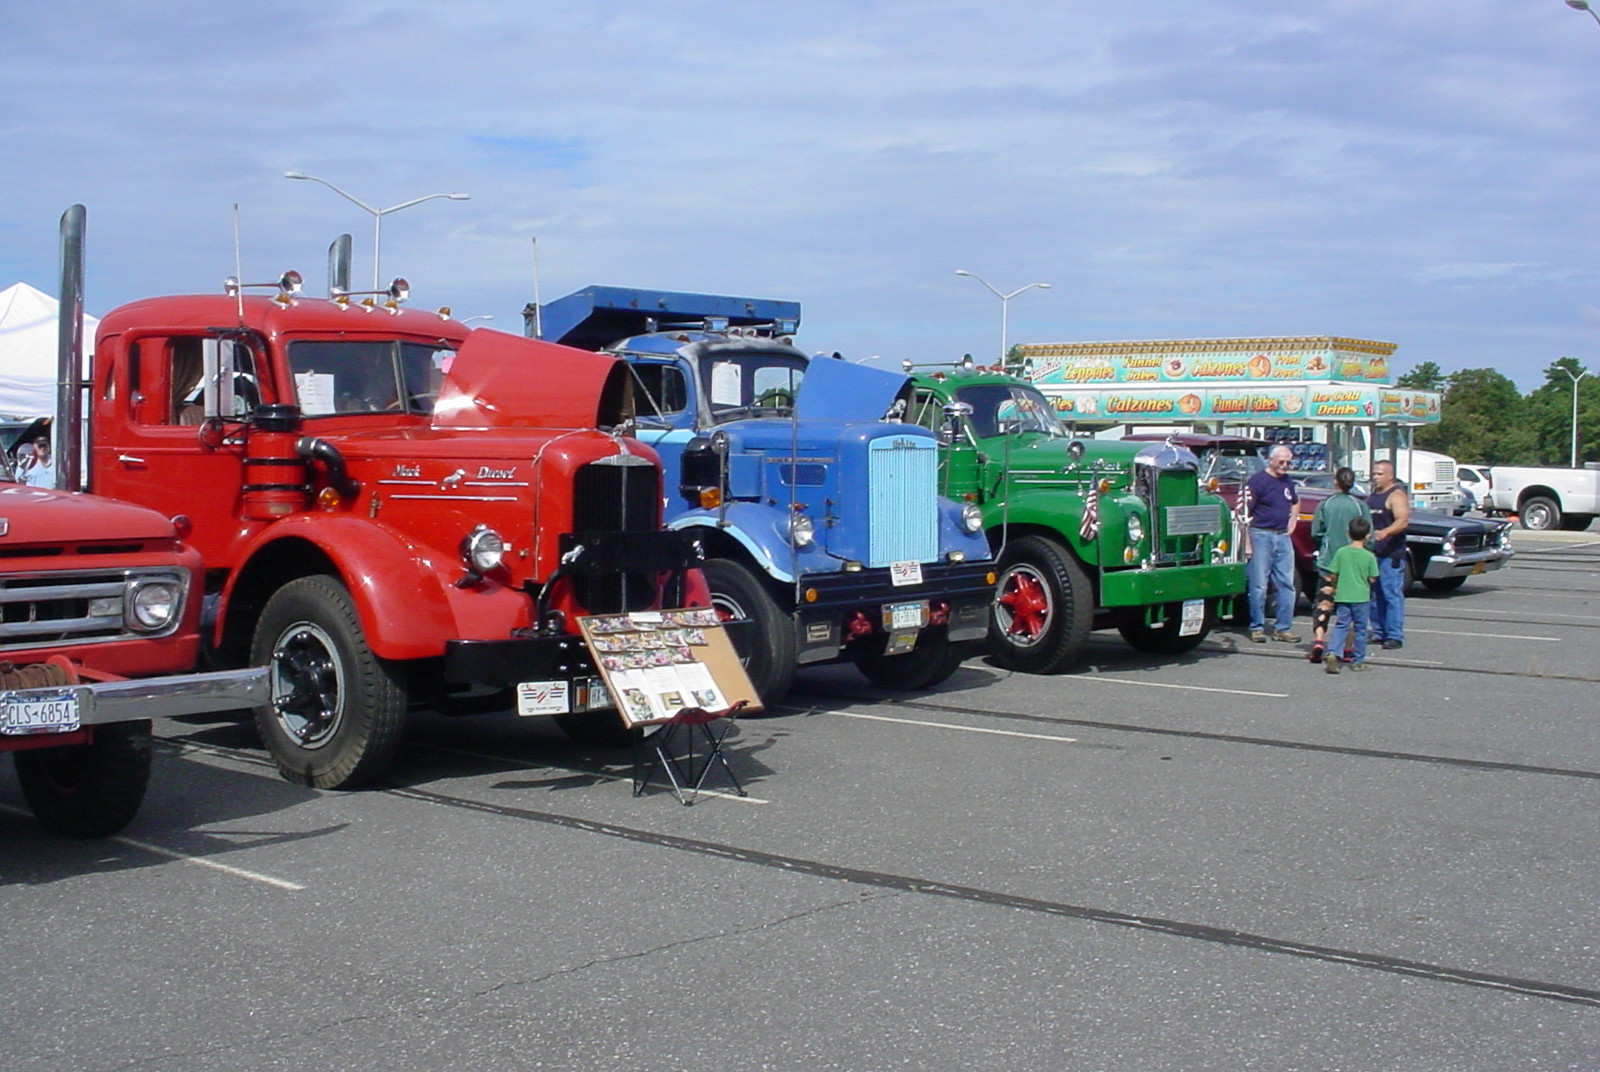 Member's trucks on display at the Convoy Big Rig Show